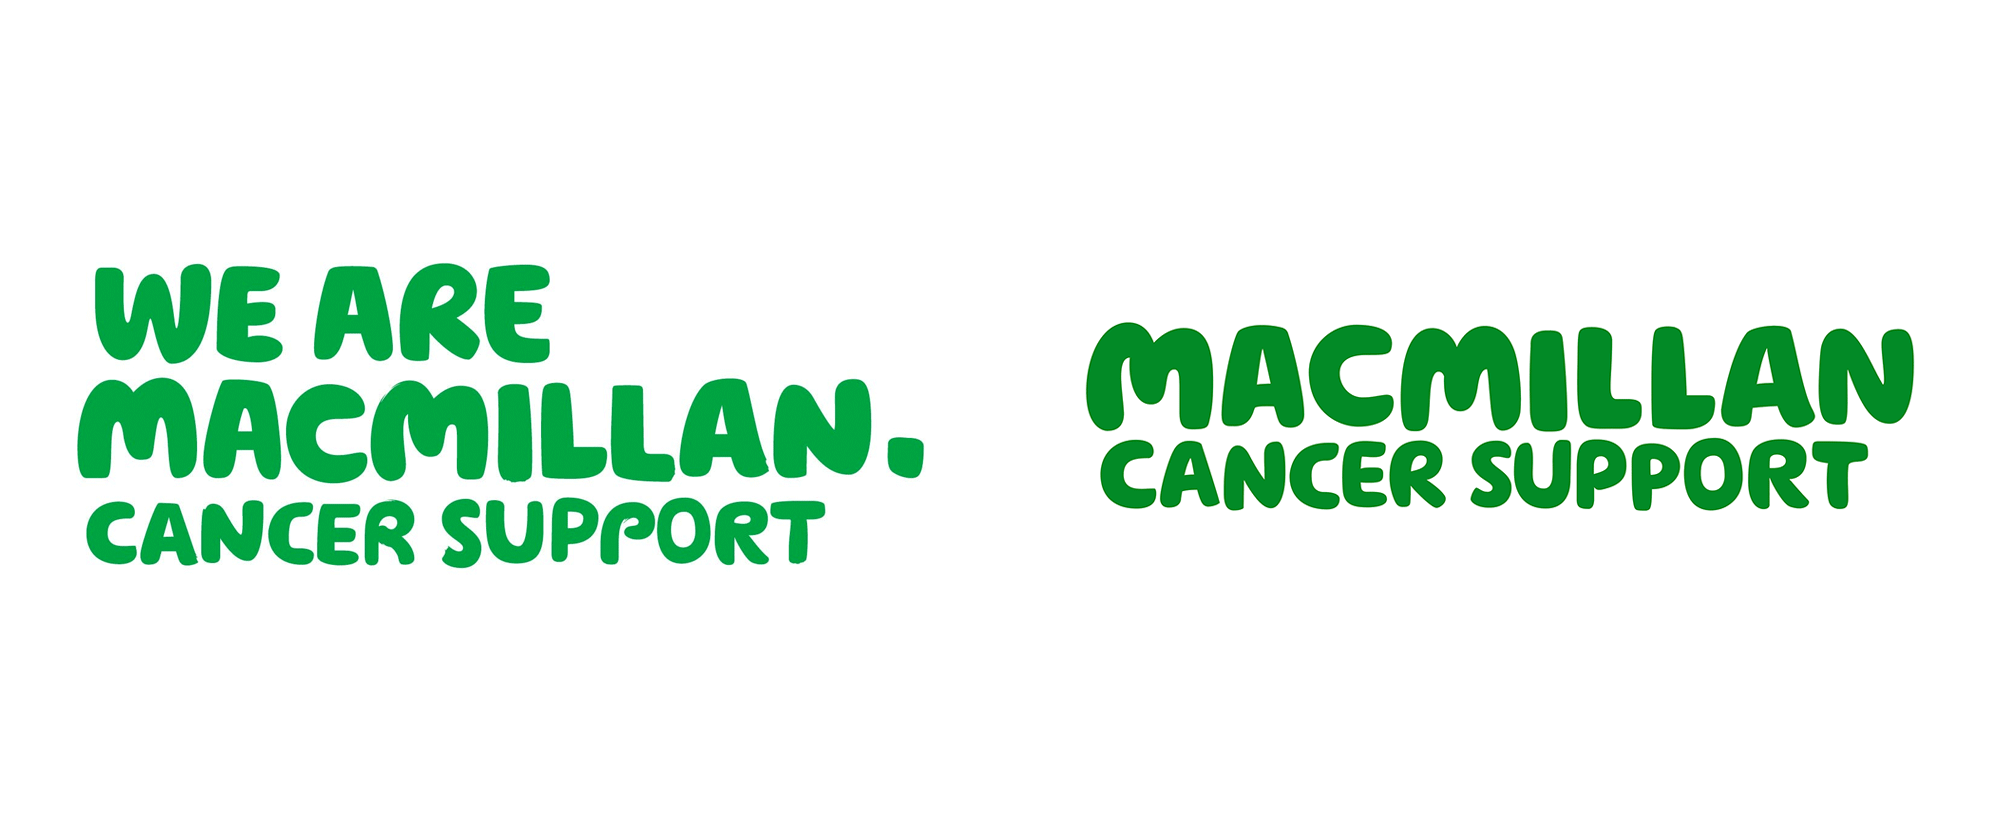 Brand New: New Logo and Identity for Macmillan Cancer.